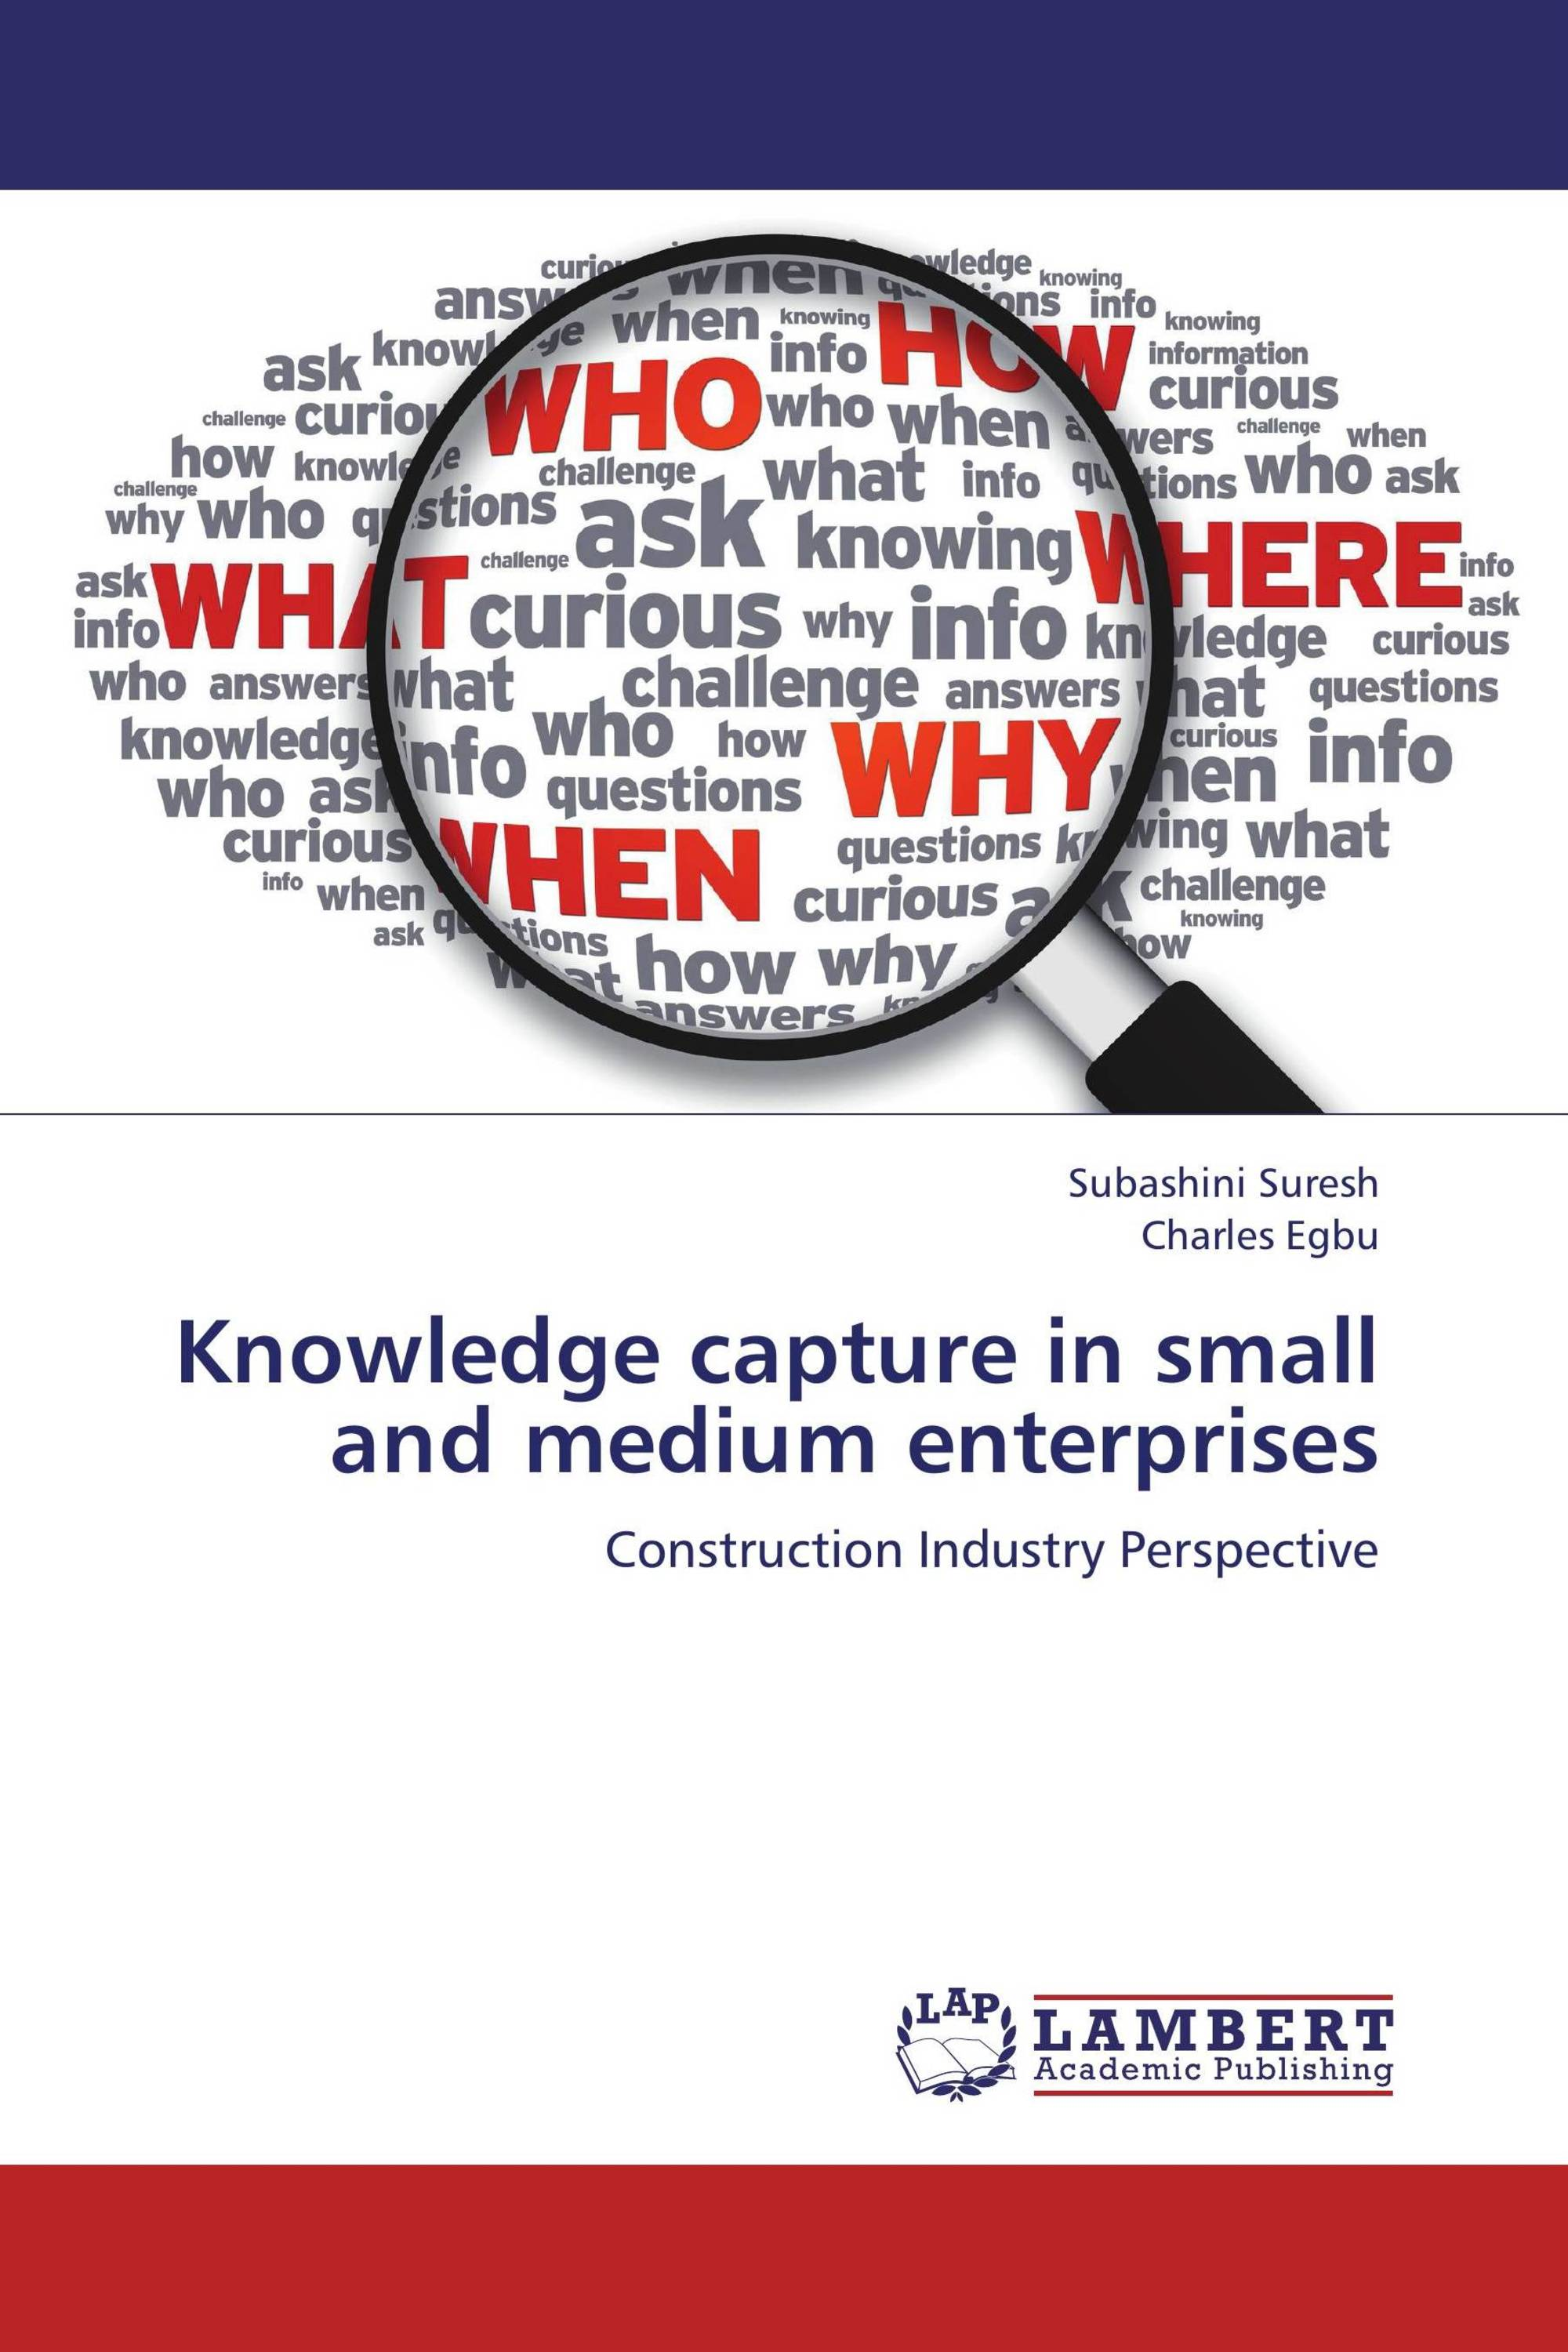 Knowledge capture in small and medium enterprises